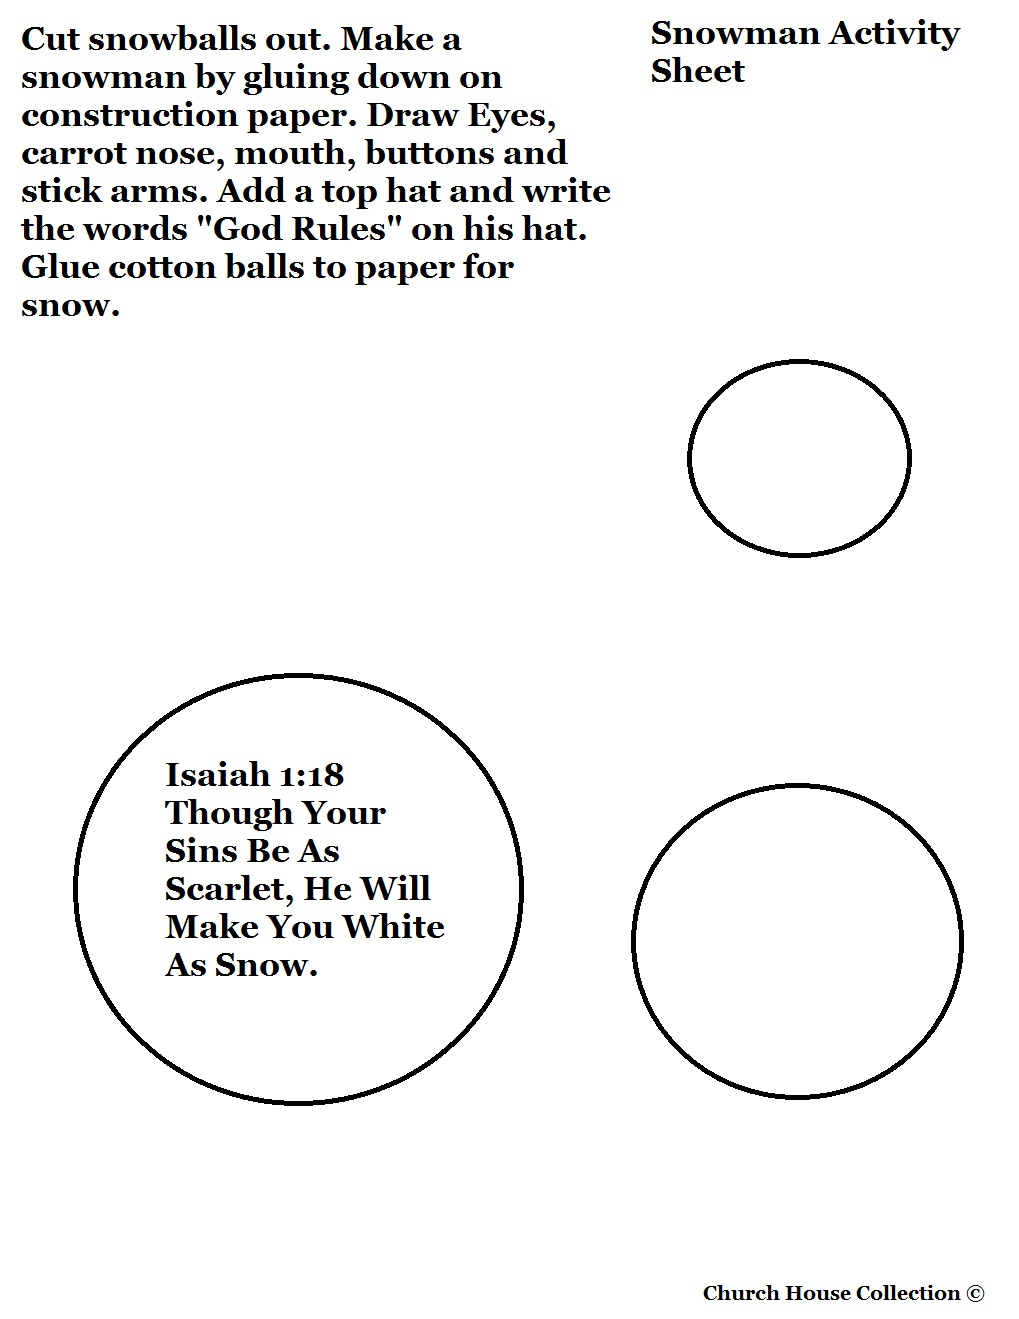 Free Christmas Snowman Cutout Craft For Sunday School Kids By Church House Collection. Snowman Printable Template Cutout Activity for Preschoolers and Toddlers.